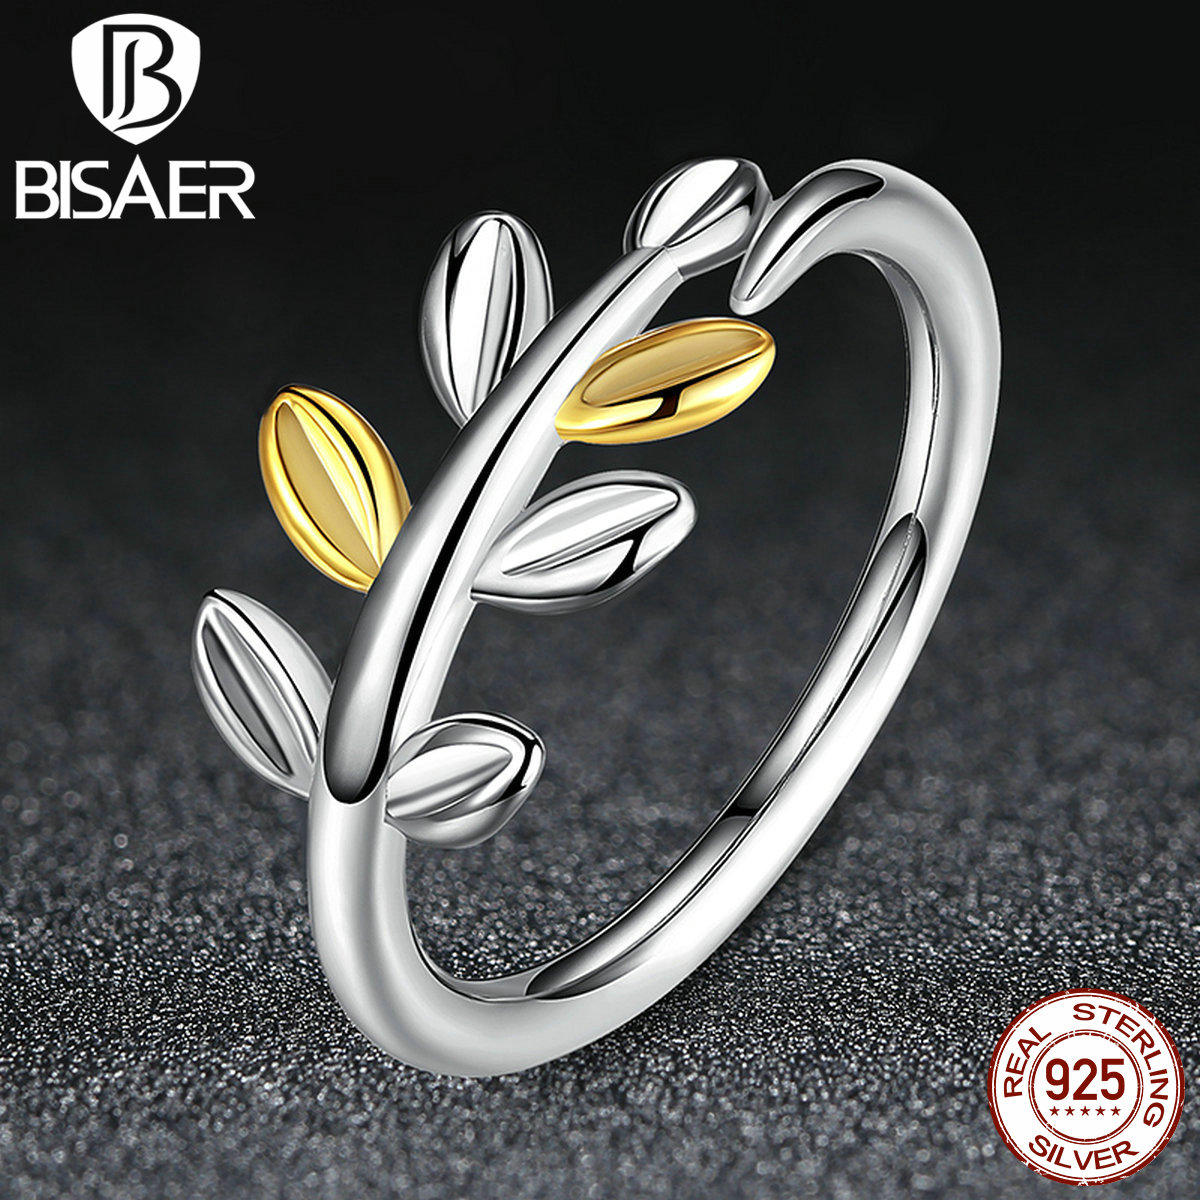 BISAER 2016 New Trendy Wedding Band Party Wholesale Clear CZ 100% 925 Sterling Silver Rings For Women Fashion Jewelry Size 7 8(China (Mainland))